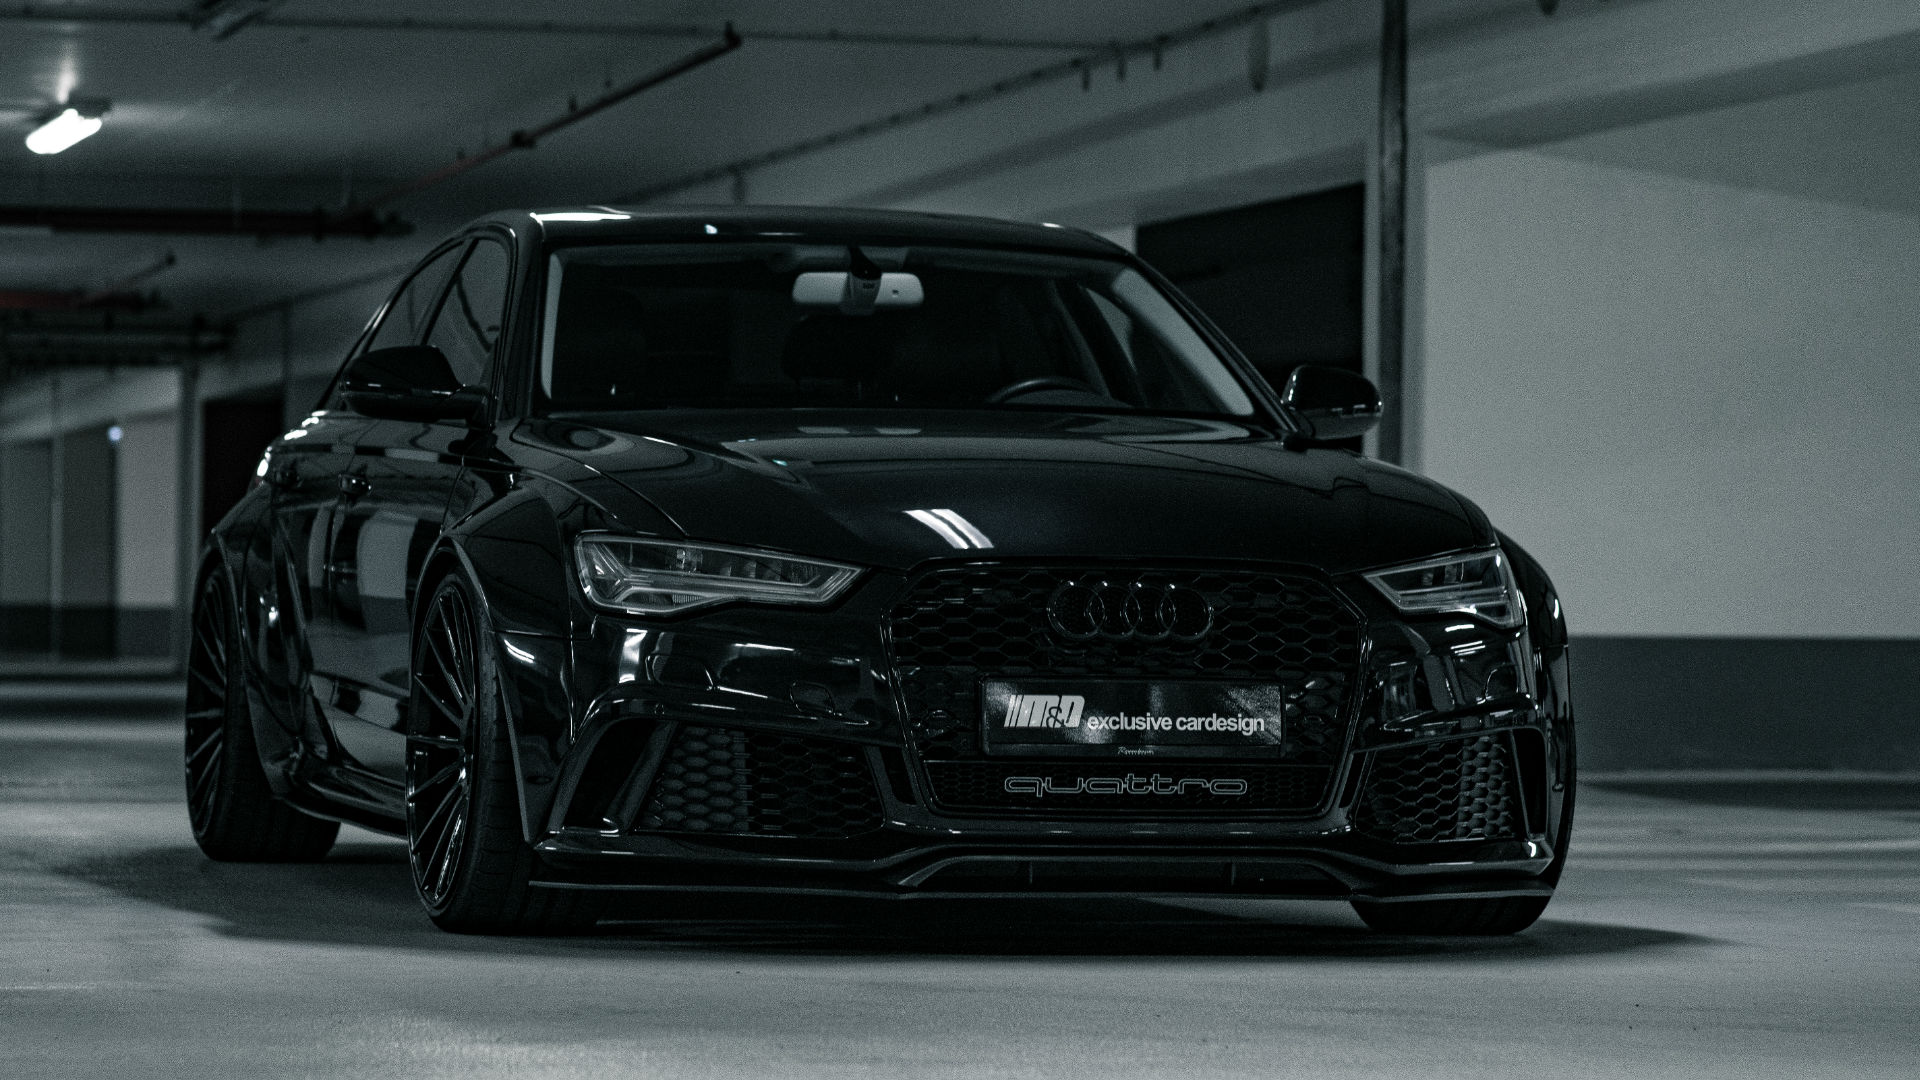 Audi A6 Rs6 C7 Limousine Breitbau Tuning Pd600r Widebody Aerodynamik Kit M D Exclusive Cardesign